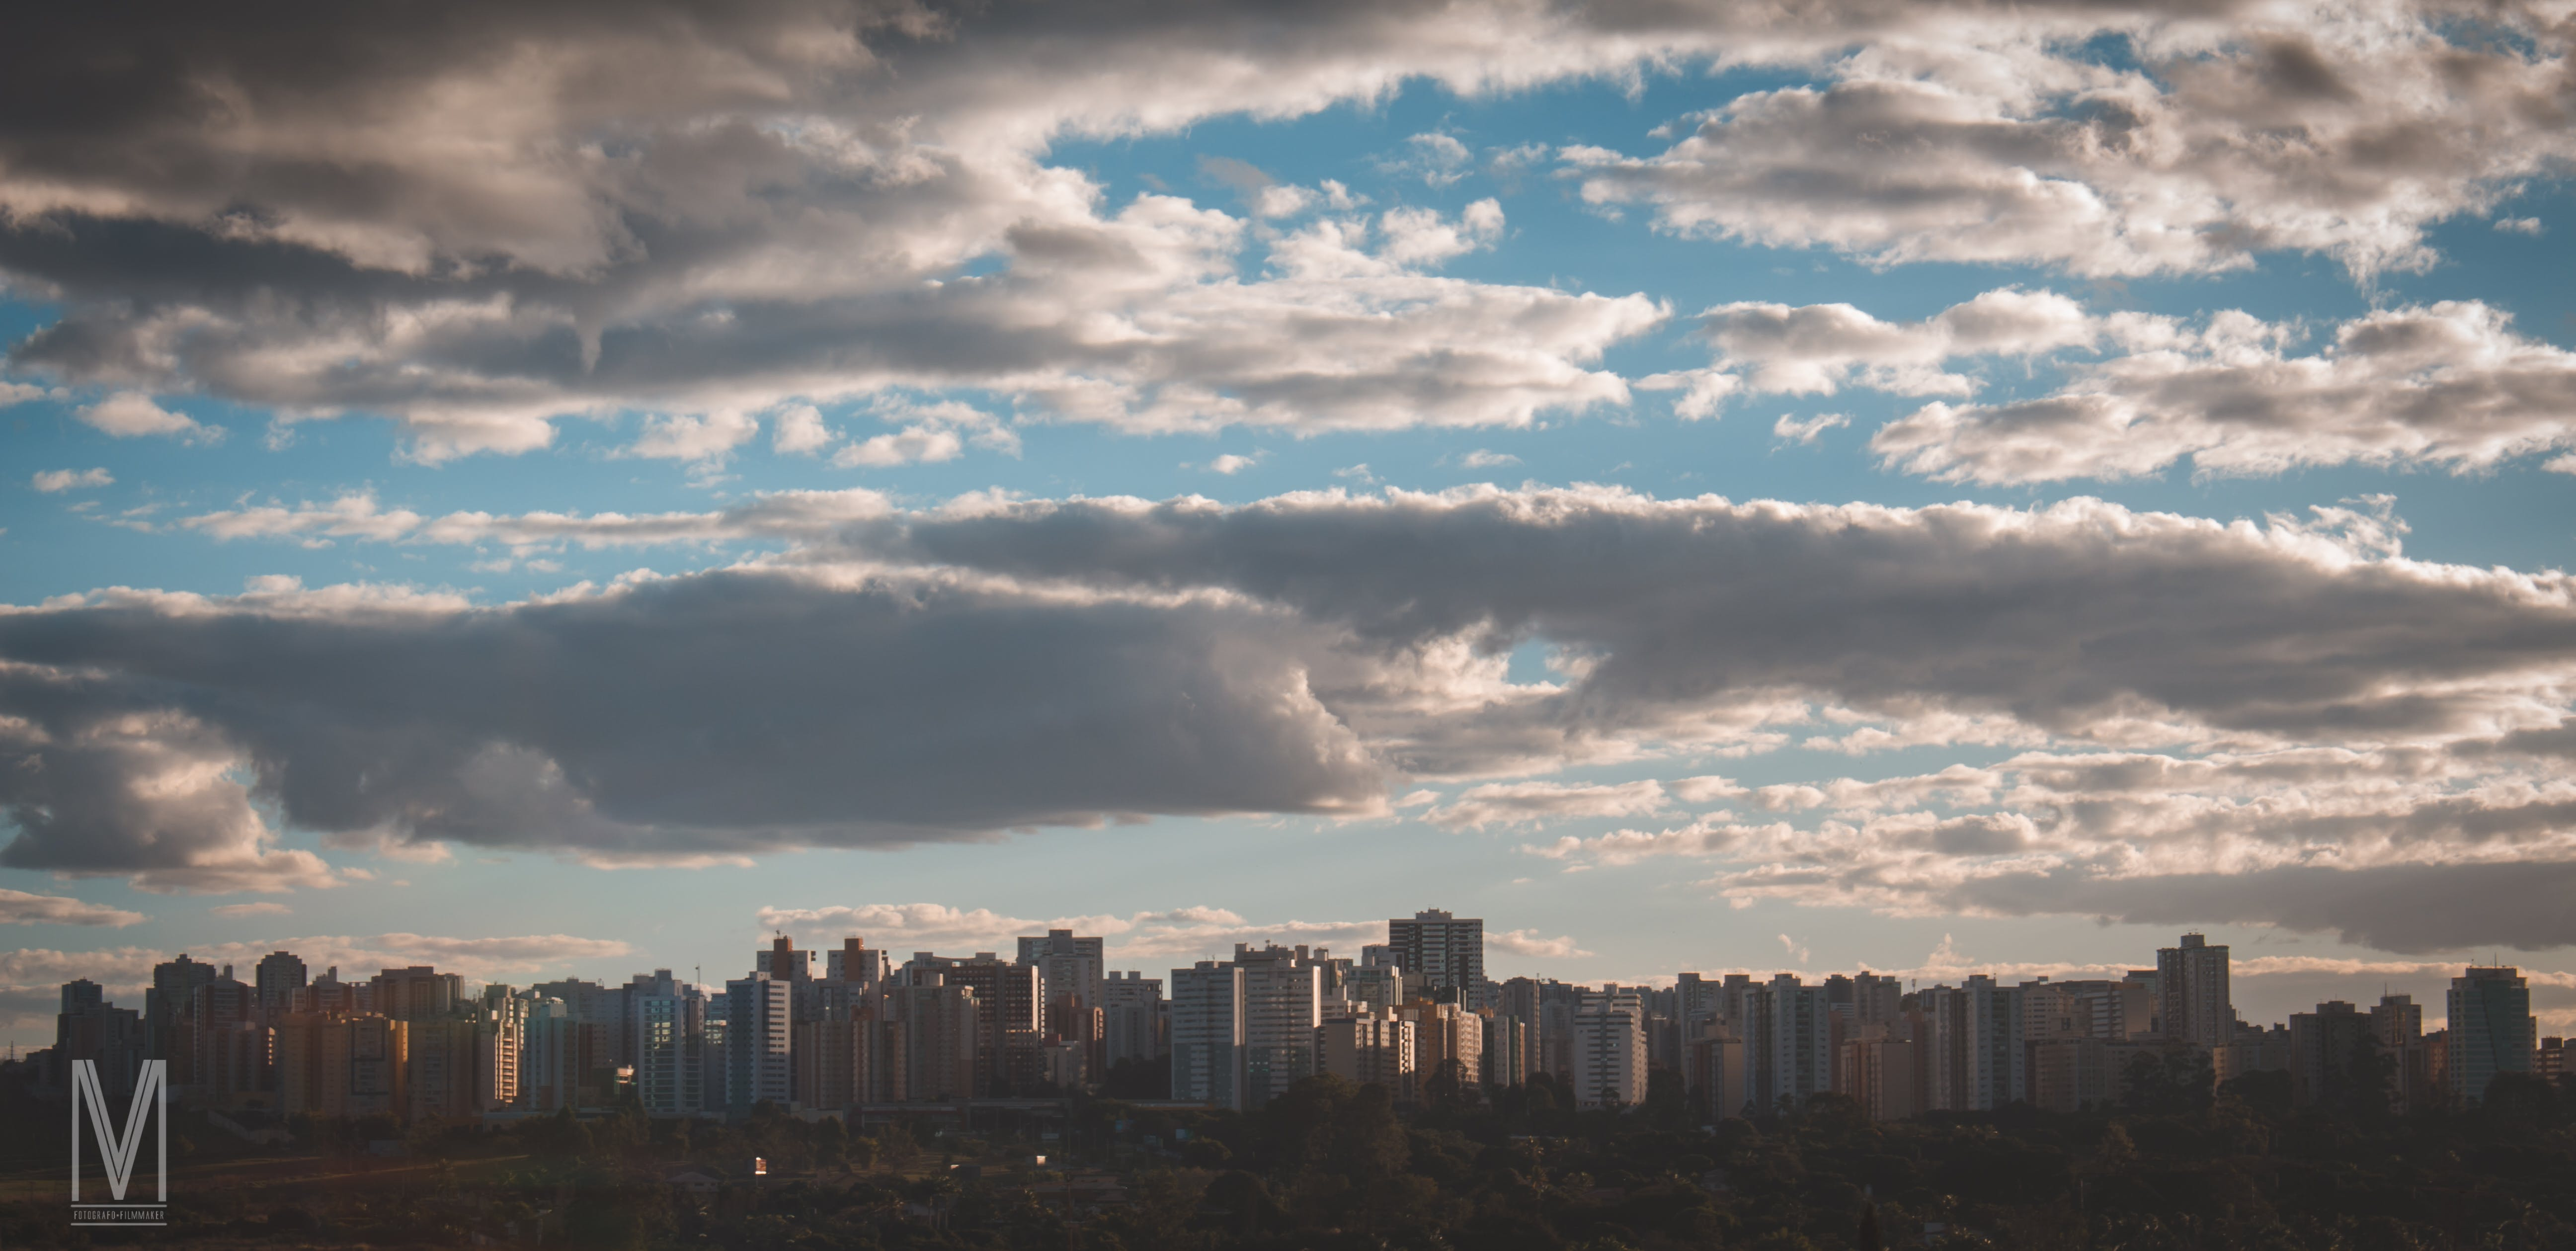 Free stock photo of cloudy sky, residential buildings